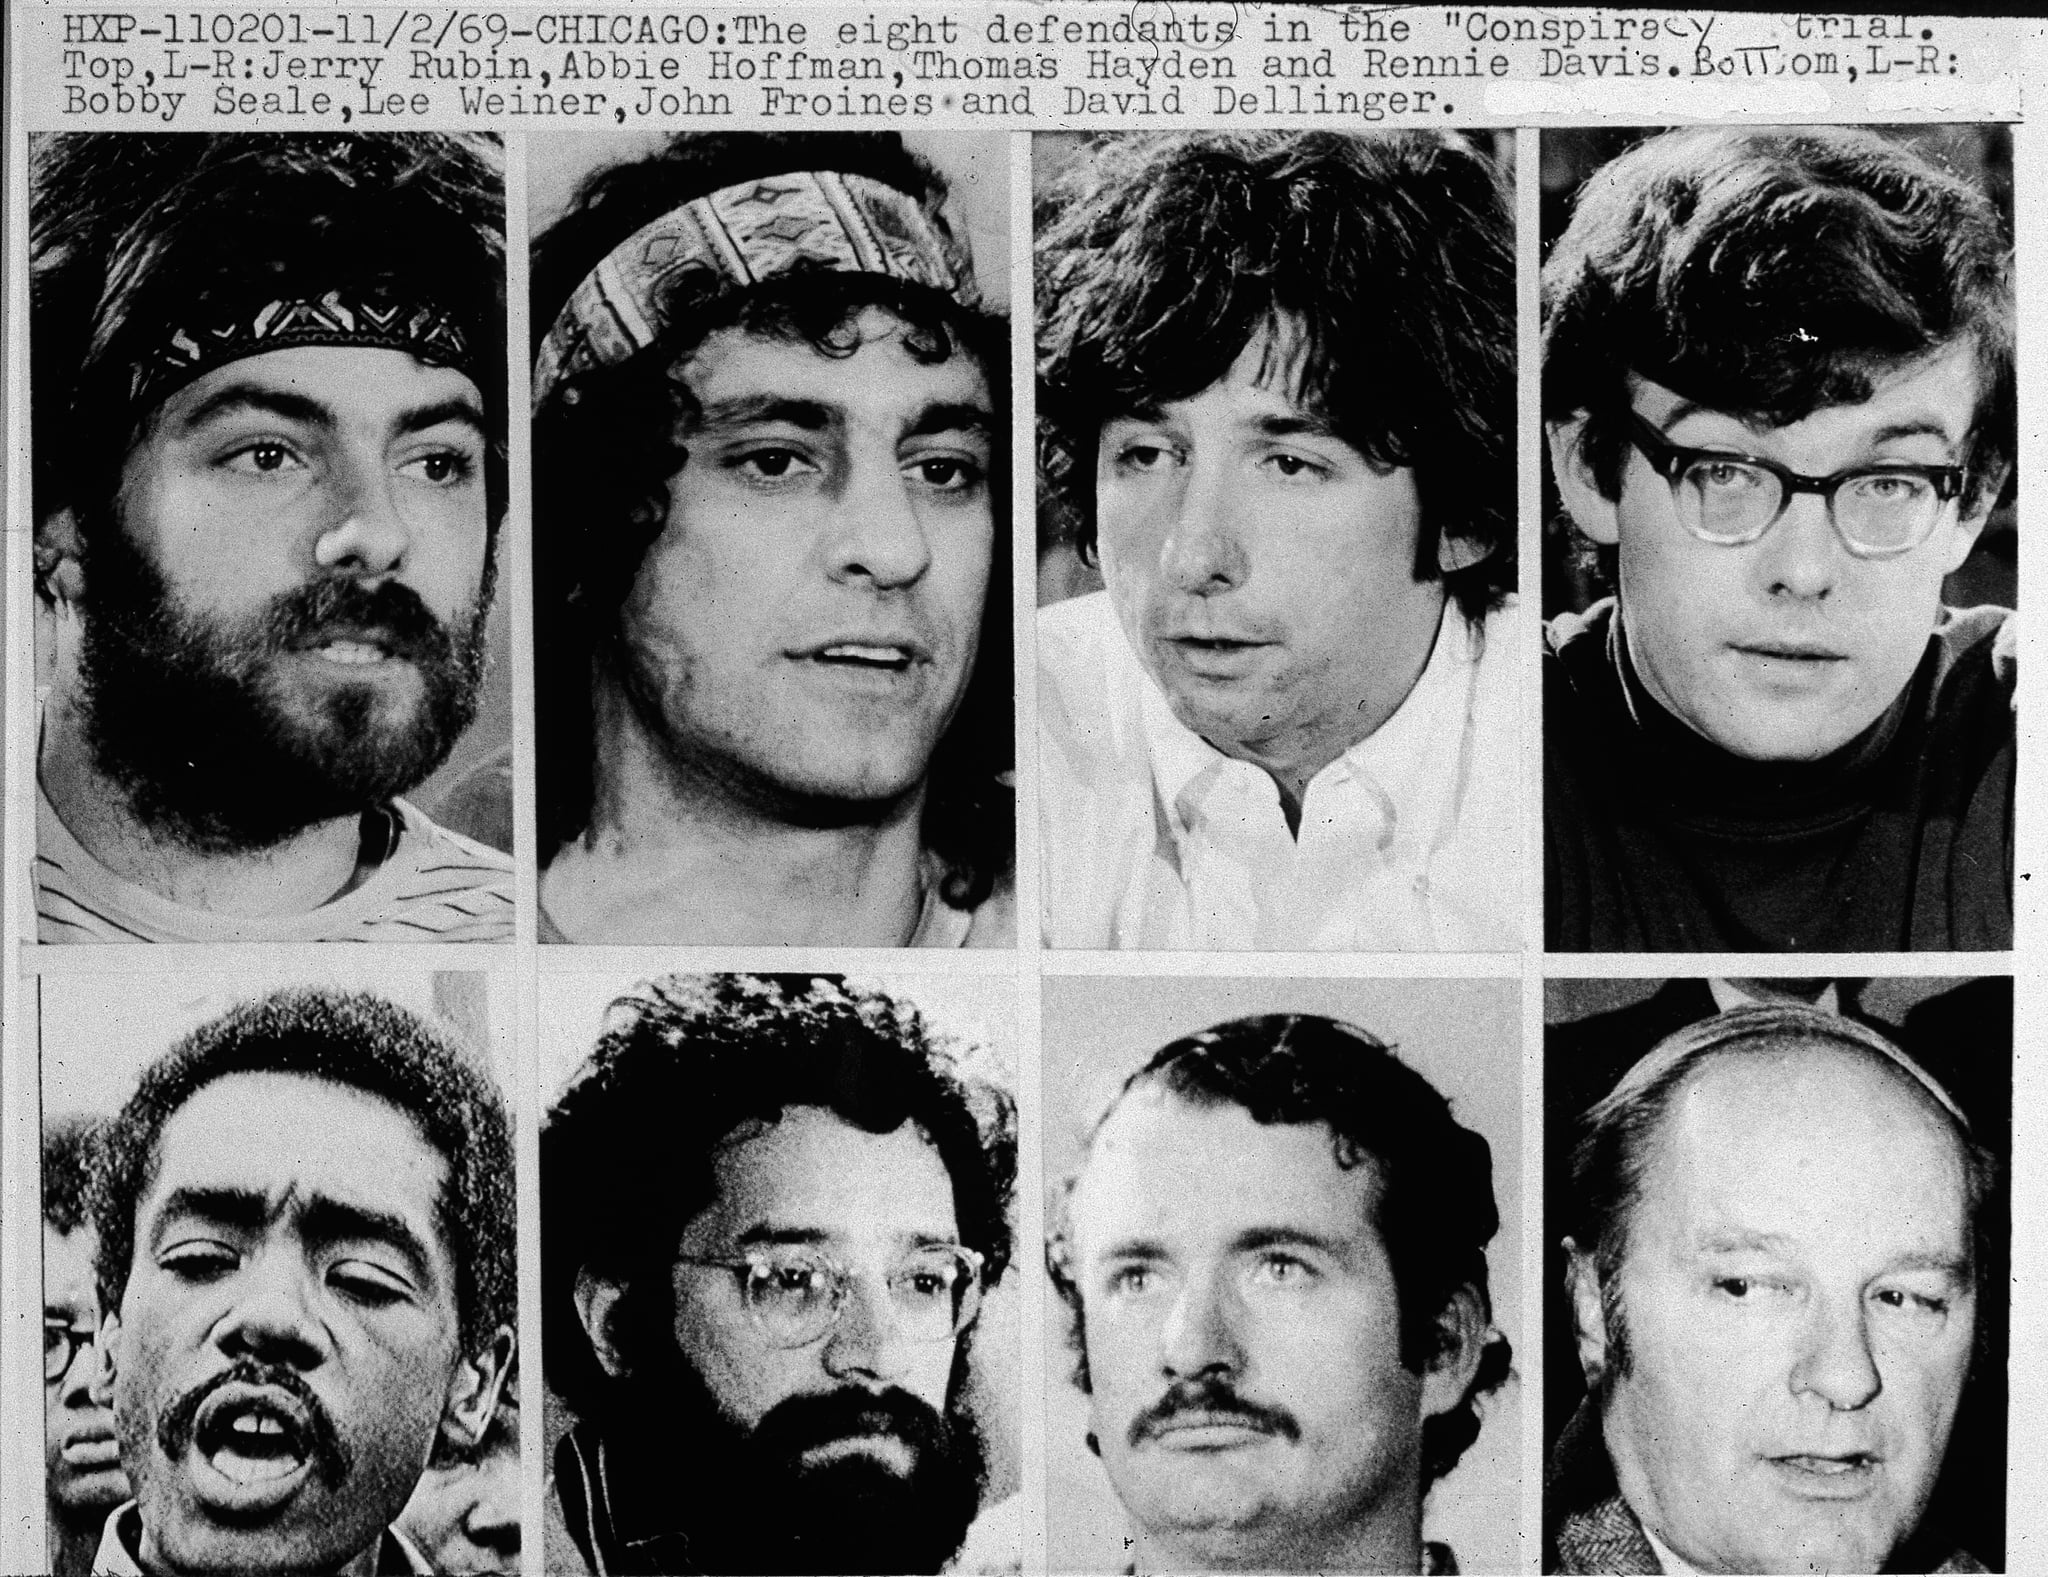 Closeups of the Chicago Eight: (top L-R) Jerry Rubin (1938 - 1998), Abbie Hoffman (1936 - 1989),Tom Hayden, Rennie Davis, Bobby Seale, Lee Weiner, John Froines and David Dellinger (1915 - 2004), circa 1968. The Chicago Seven, as they were called after Seale was severed from the case, were indicted for conspiracy and inciting a riot during the 1968 Democratic National Convention in Chicago, Illinois. Froines and Weiner were acquitted on all charges. The other five were convicted of inciting to riot, but the convictions were overturned on appeal. (Photo by Hulton Archive/Getty Images)